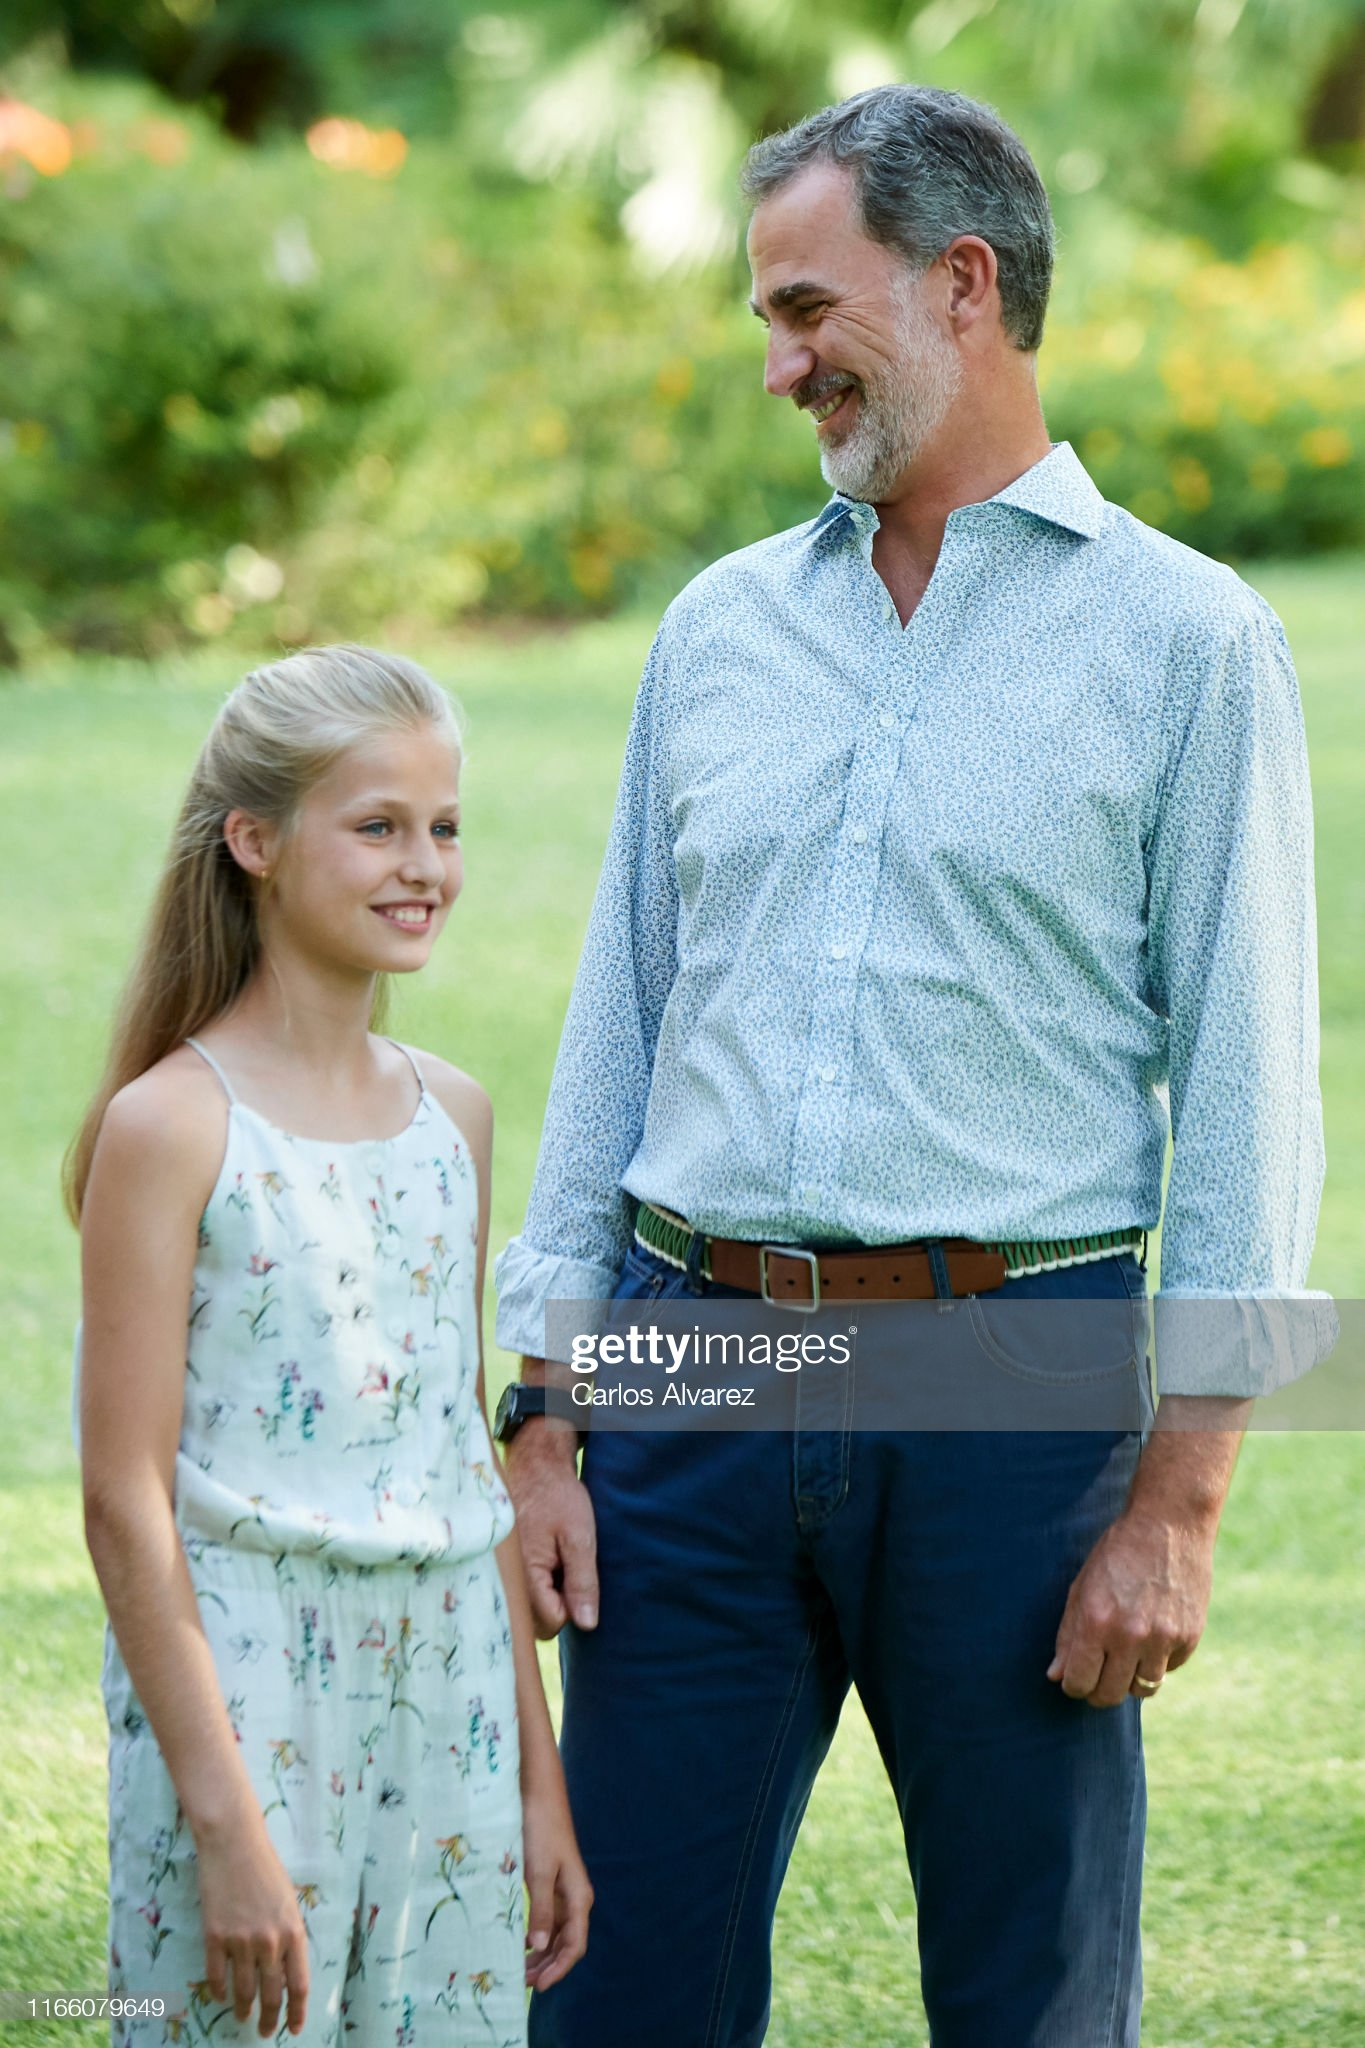 king-felipe-vi-of-spain-and-princess-leonor-of-spain-pose-for-the-picture-id1166079649